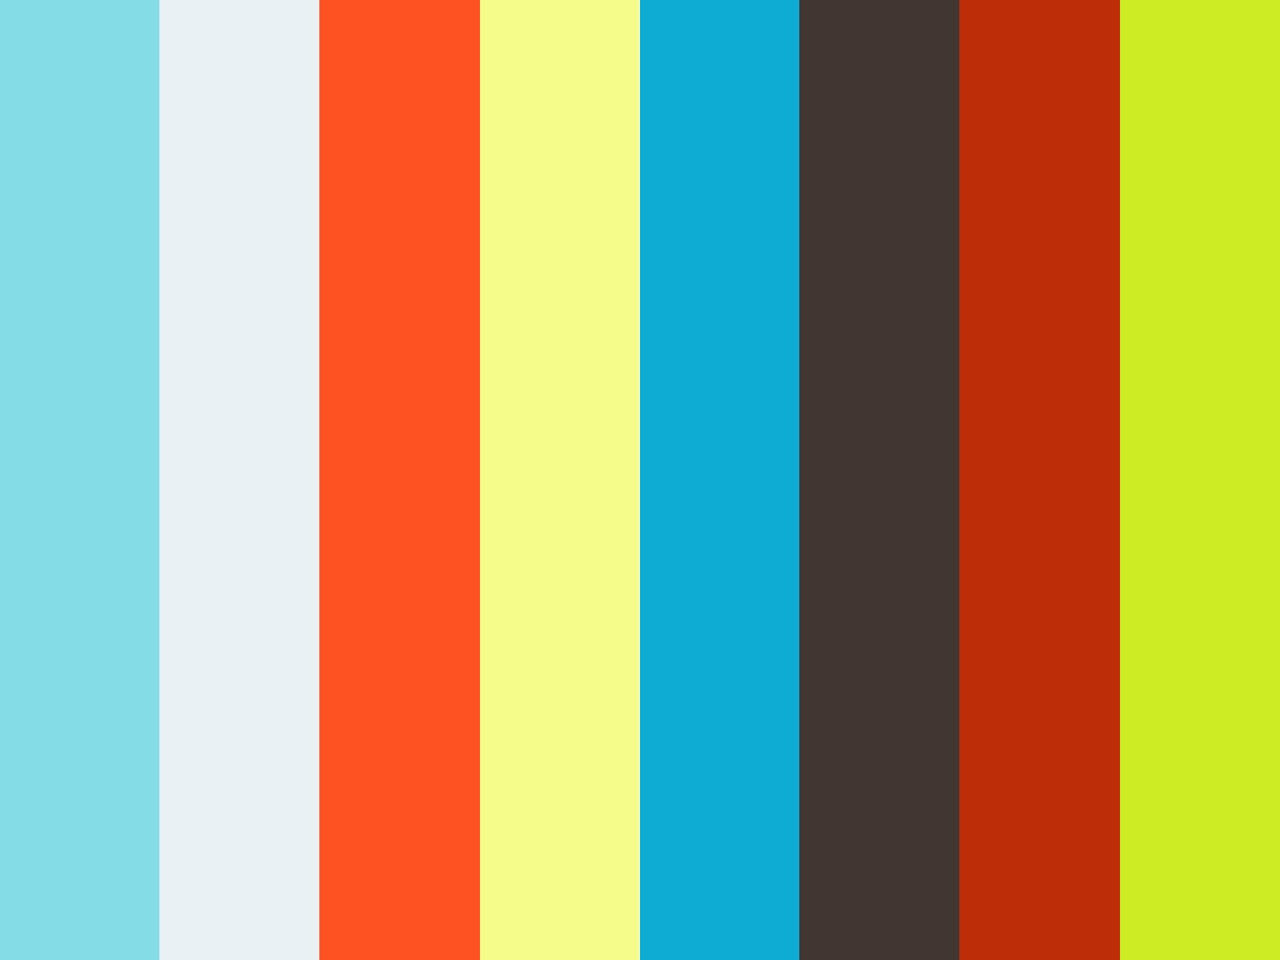 Healthcare Reform Series - Webinar 3